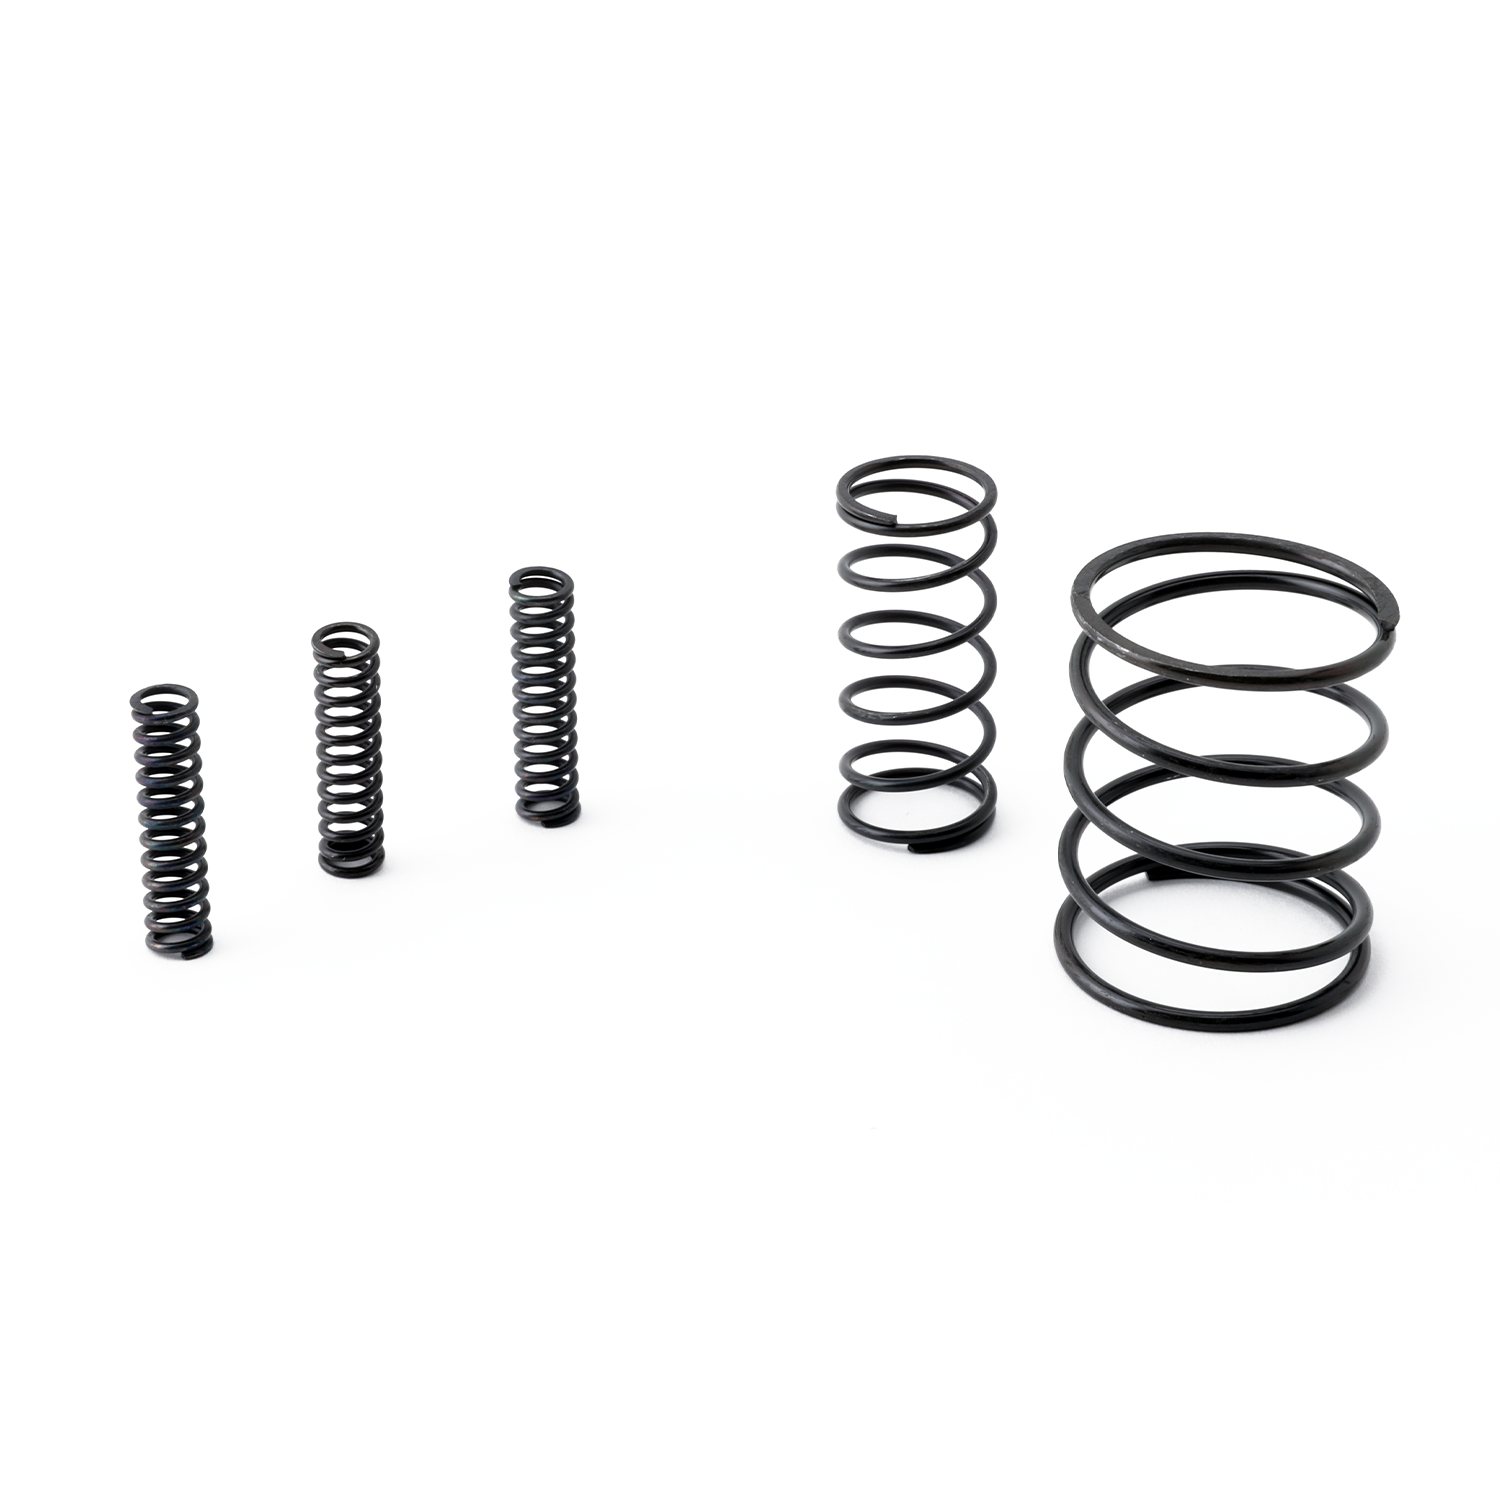 Hybrid Racing Heavy-Duty Gear Selector & Detent Spring Package